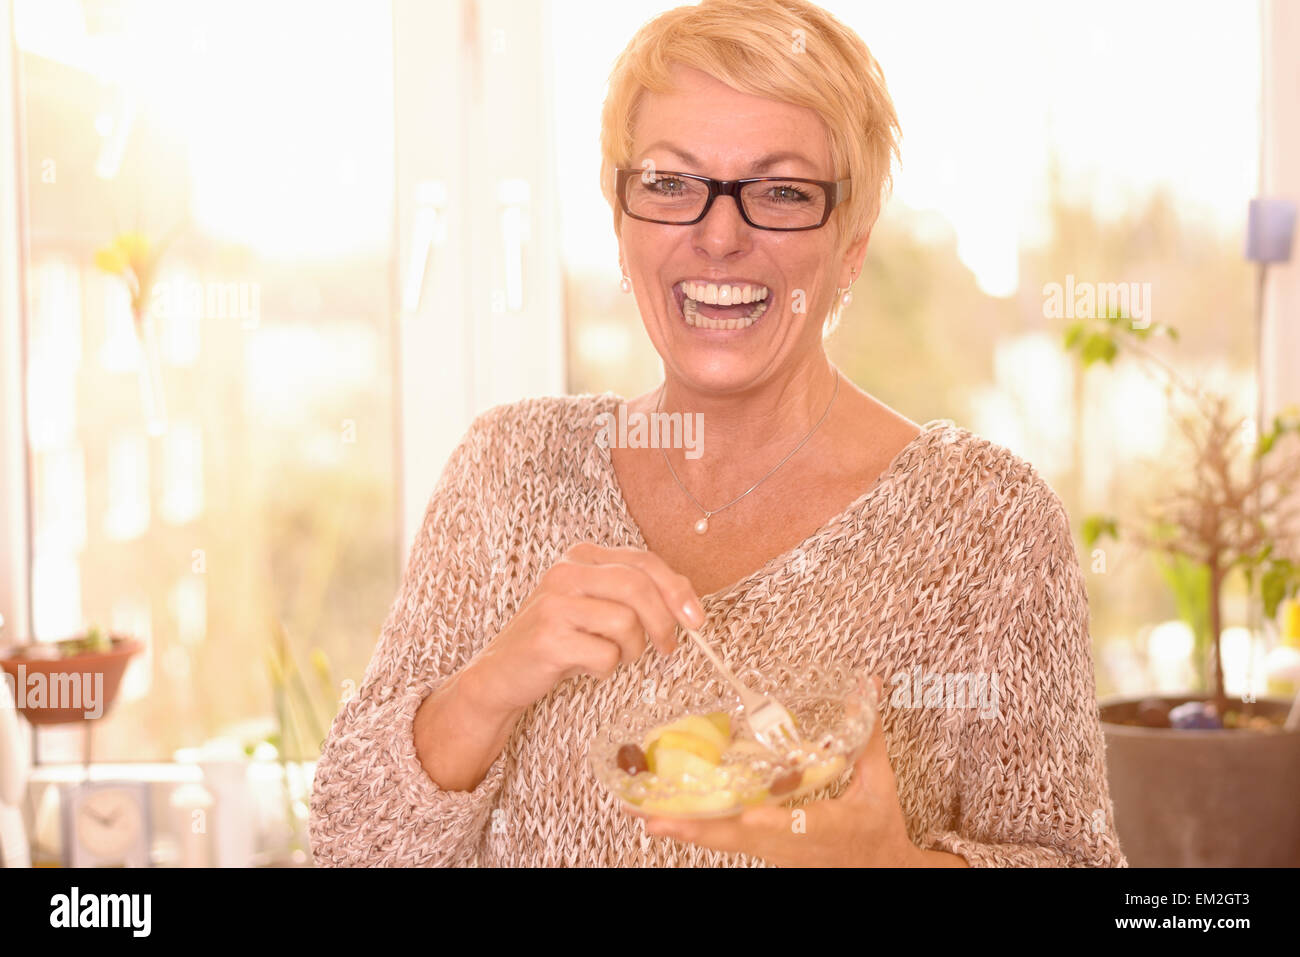 Vivacious attractive middle-aged woman wearing glasses eating a healthy bowl of fruit salad rich in vitamins - Stock Image